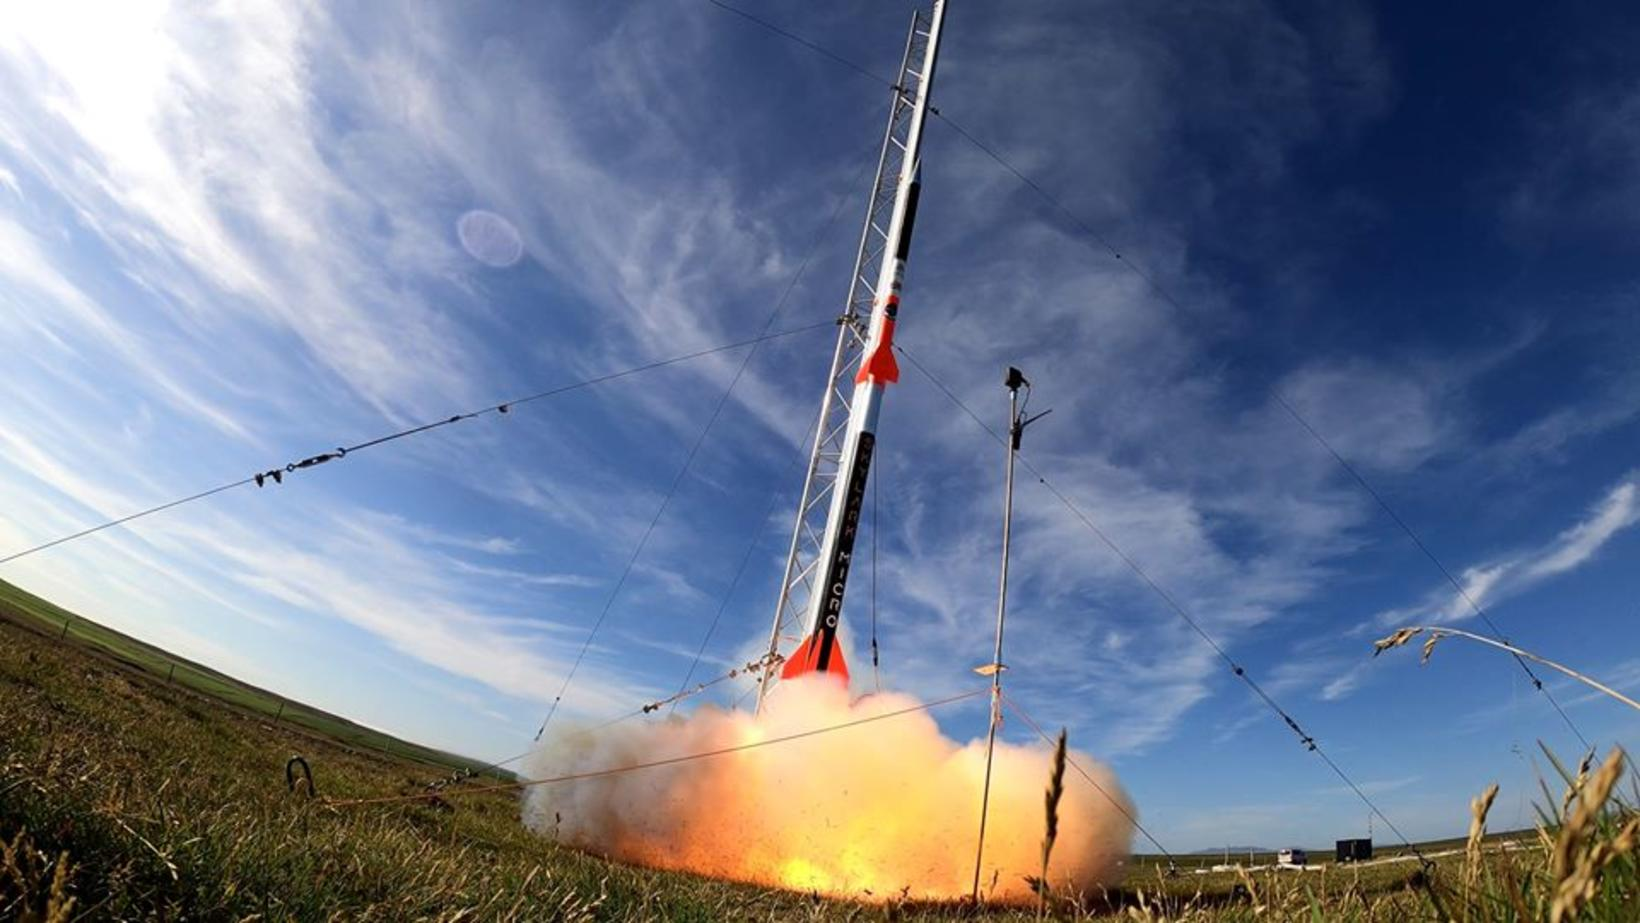 The rocket being launched.